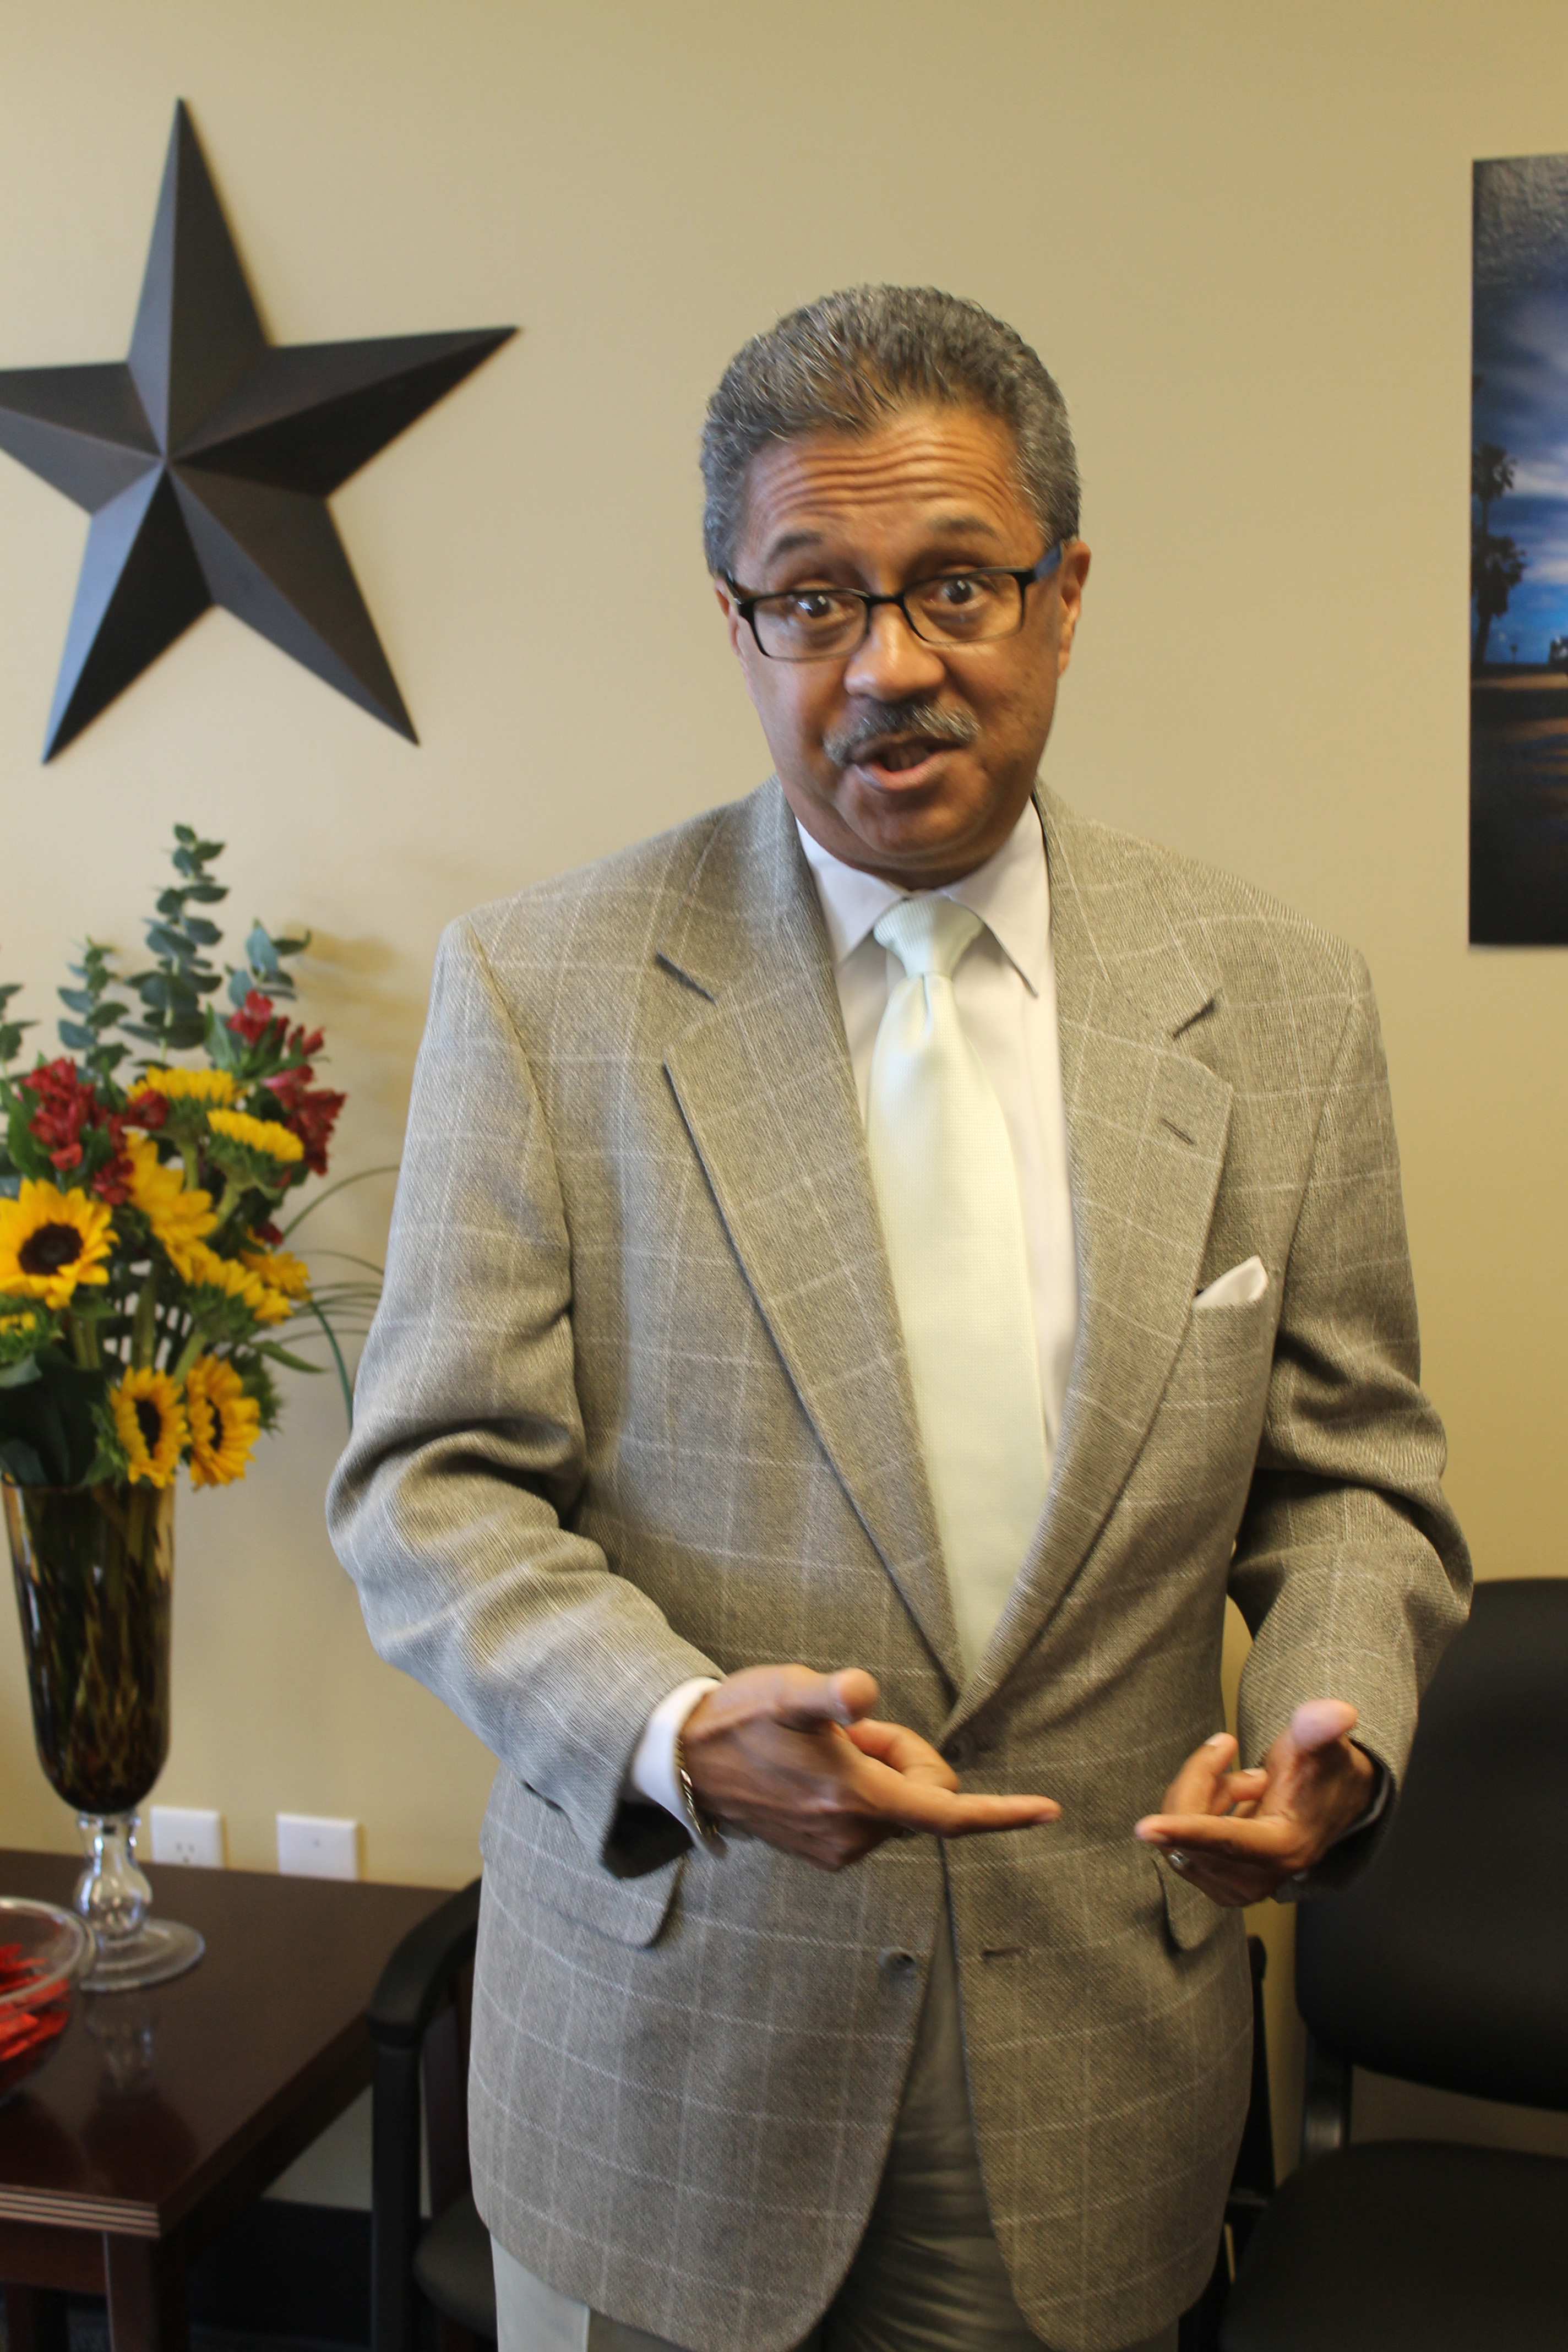 CORRECTION: Photo shows Fort Worth Councilman Frank Moss